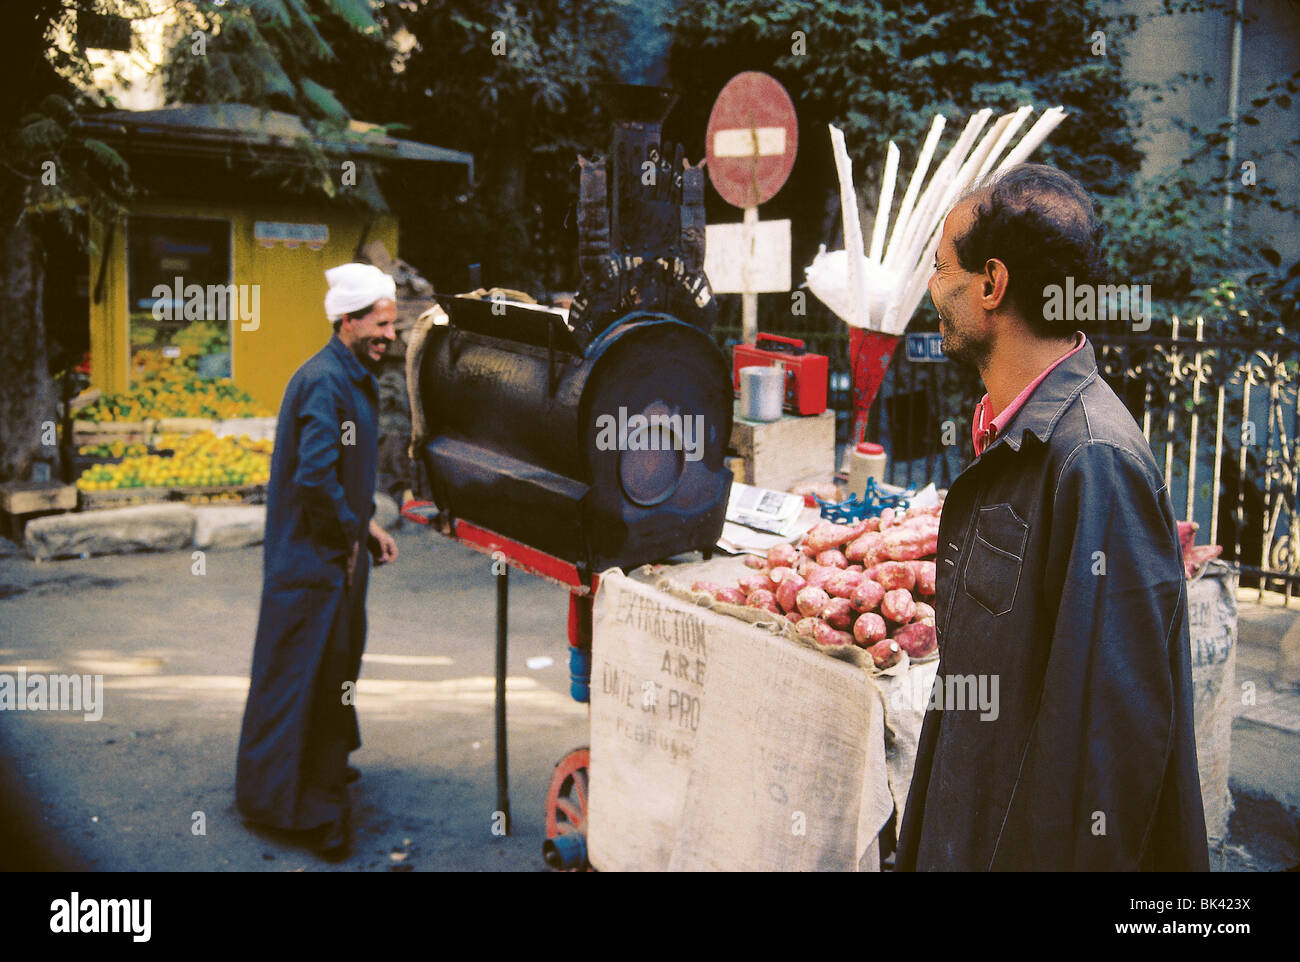 Food vendor with vegetables, Egypt - Stock Image